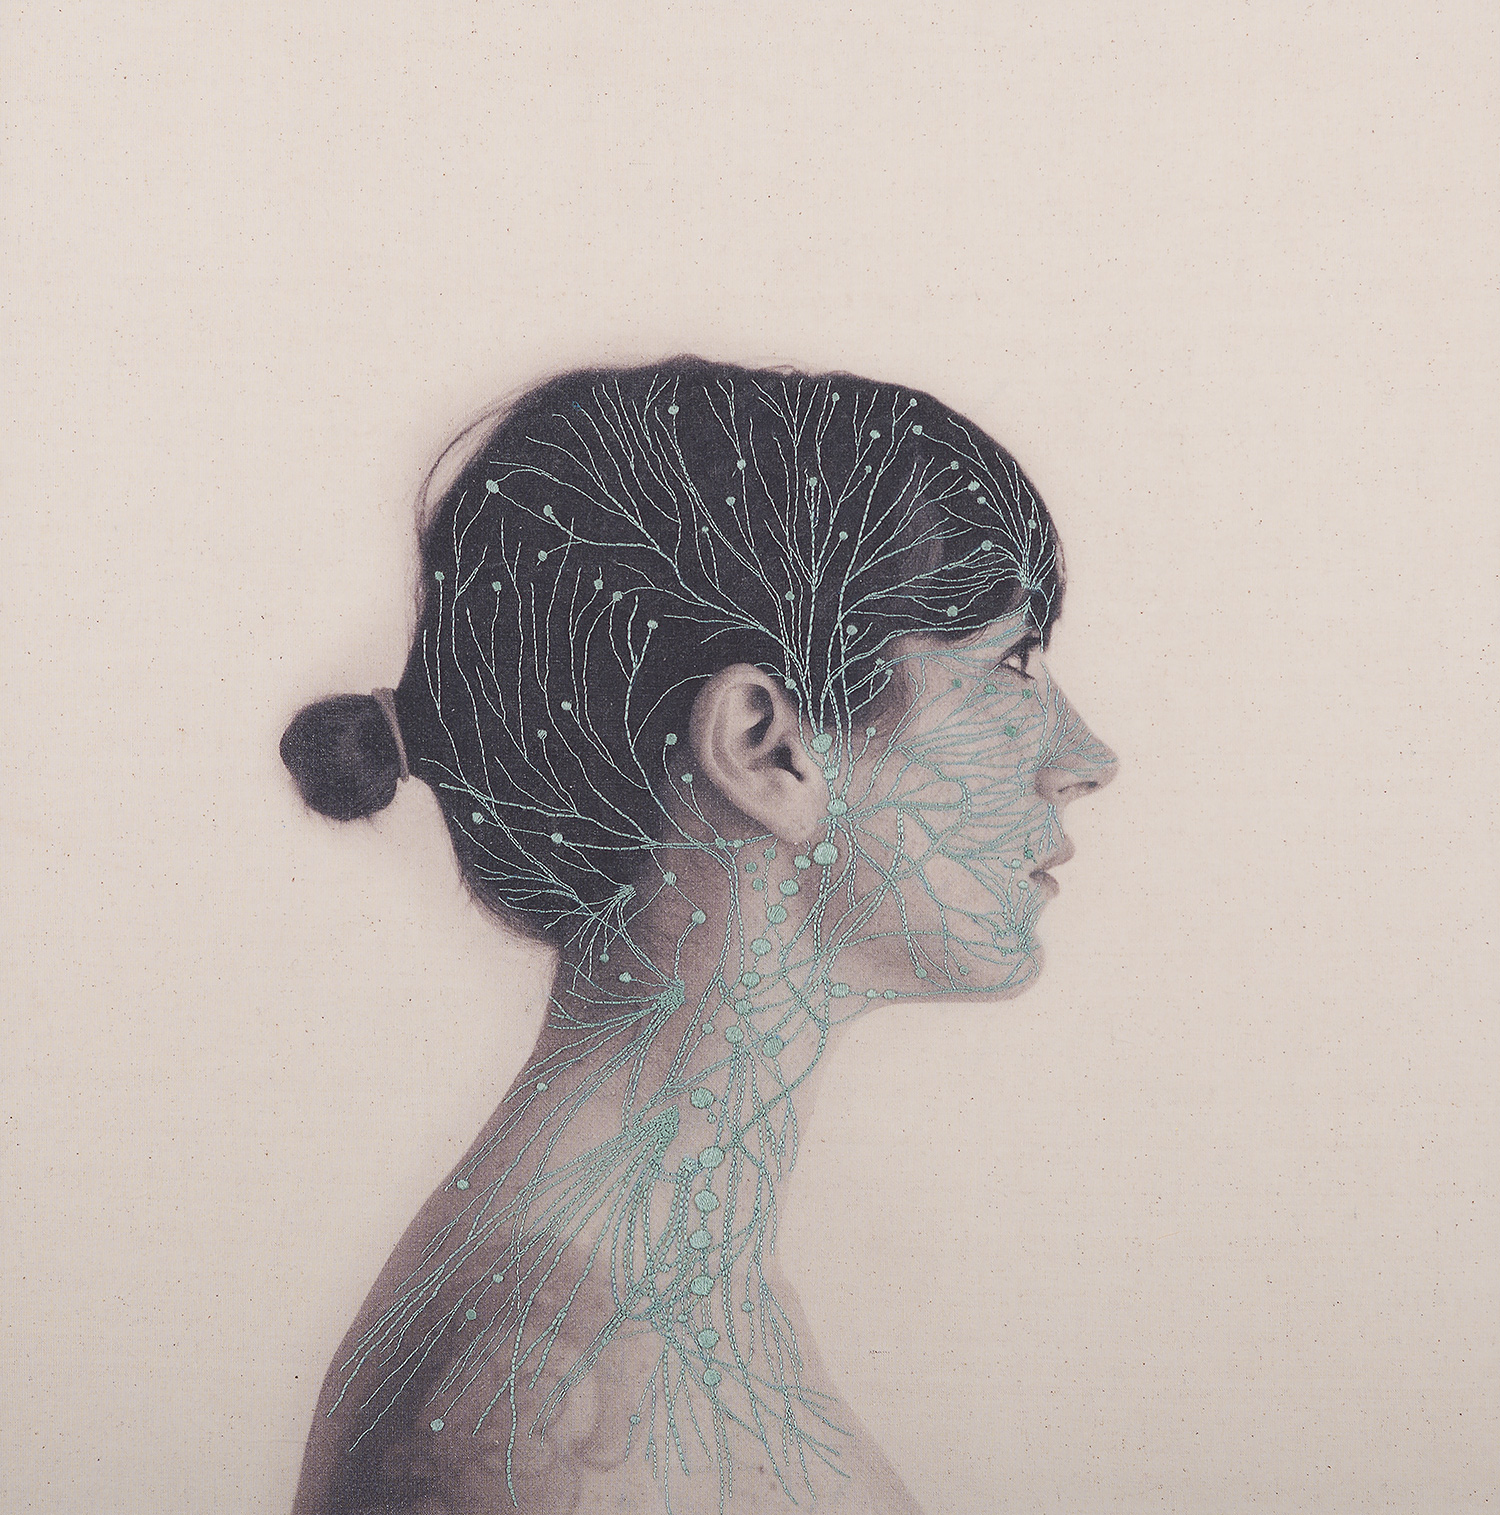 Self Portraits Embroidered With Images of Blood Vessels, Bones, and Muscle Tissue by Juana Gomez